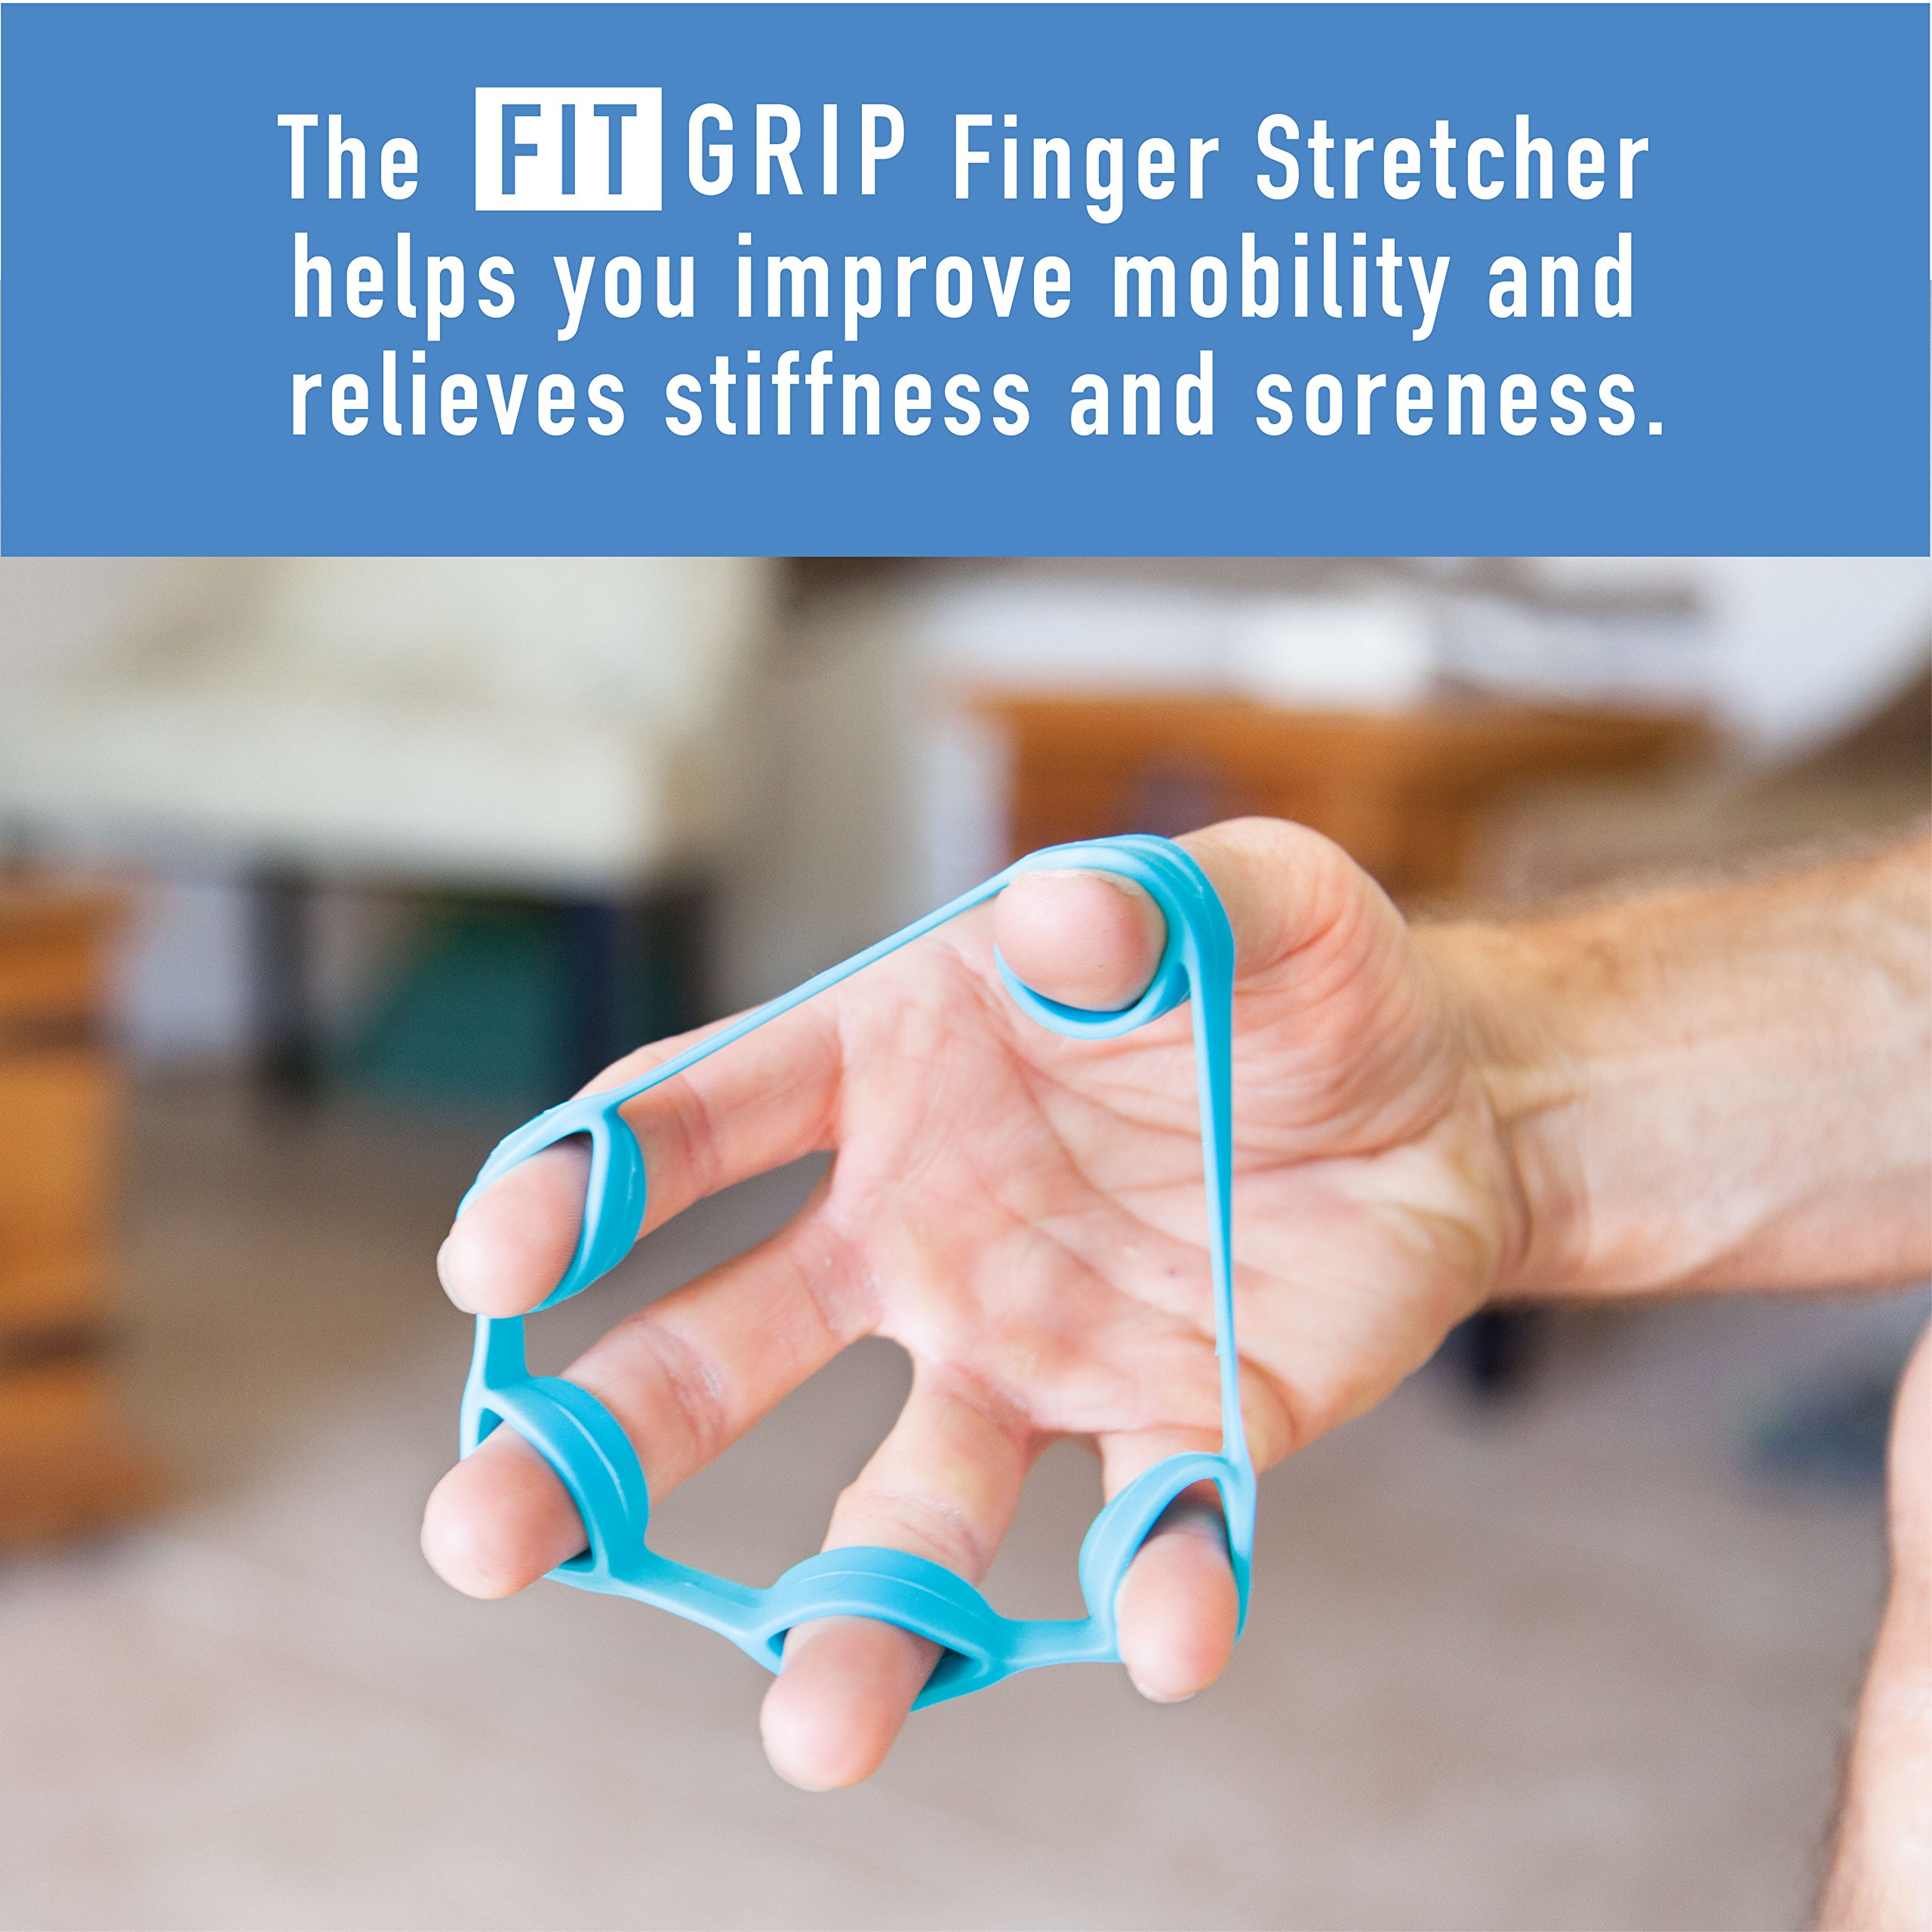 Hand Grip Strength and Forearm Trainer 4-Pack Bundle: Resistance Grip Strengthener, Finger Trainer, Finger Exerciser Stretcher, Grip Ring | Ideal for Athletes, Therapy for Arthritis, Carpal Tunnel by Fit Grip (Image #5)